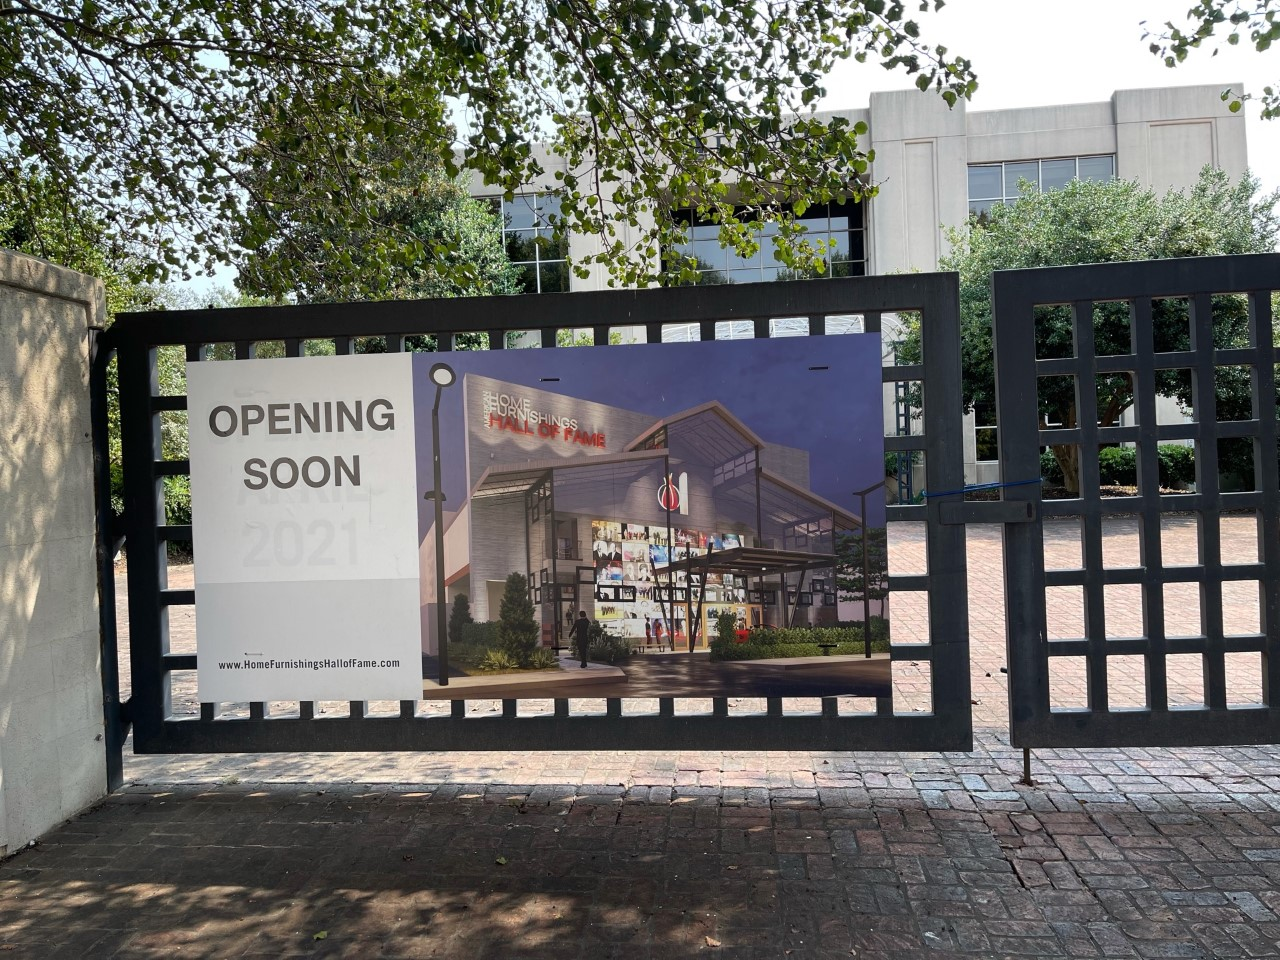 American Home Furnishings Hall of Fame headquarters opening soon in High Point